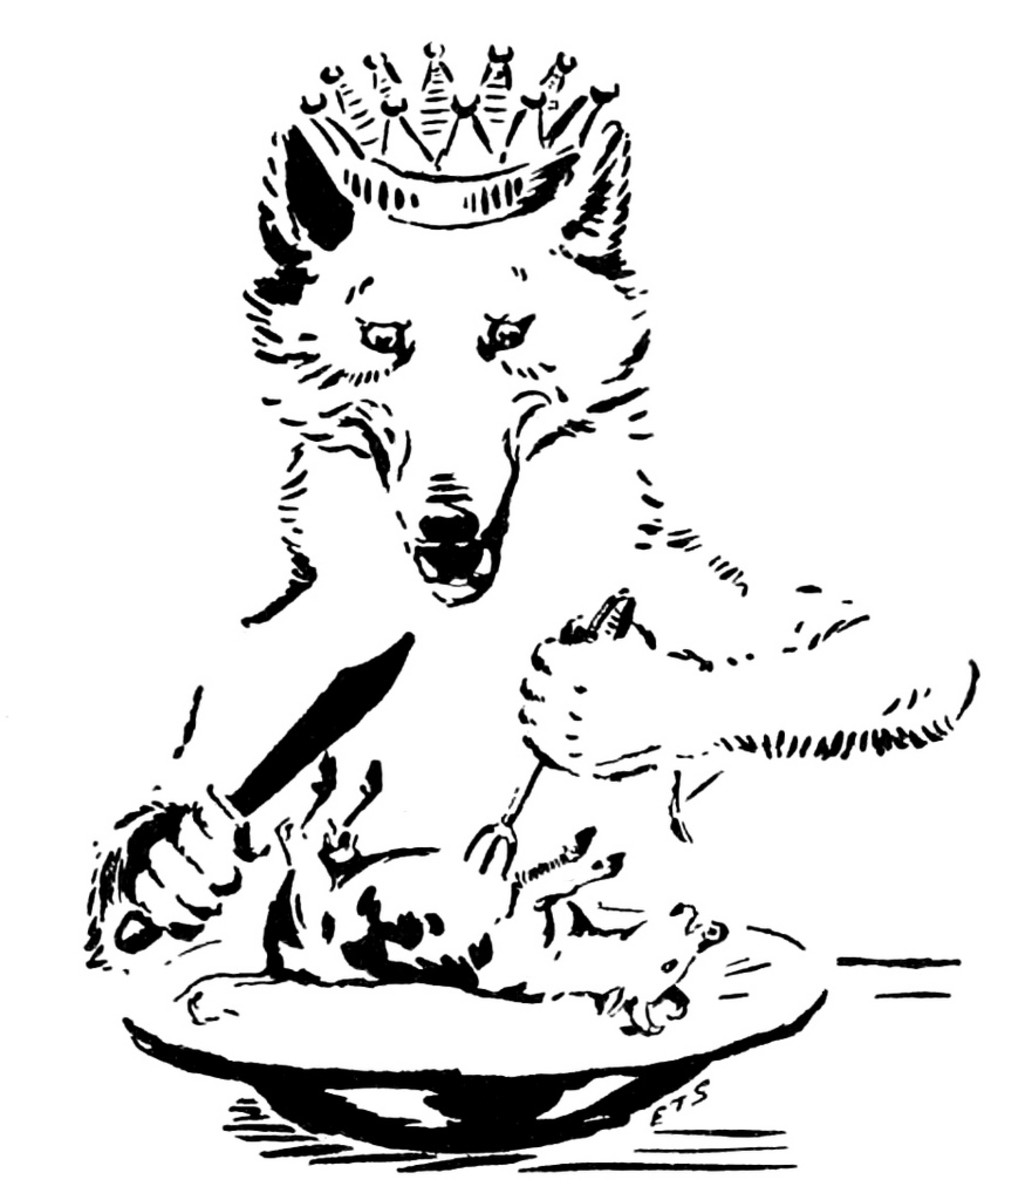 What will the wolf eat for dinner?